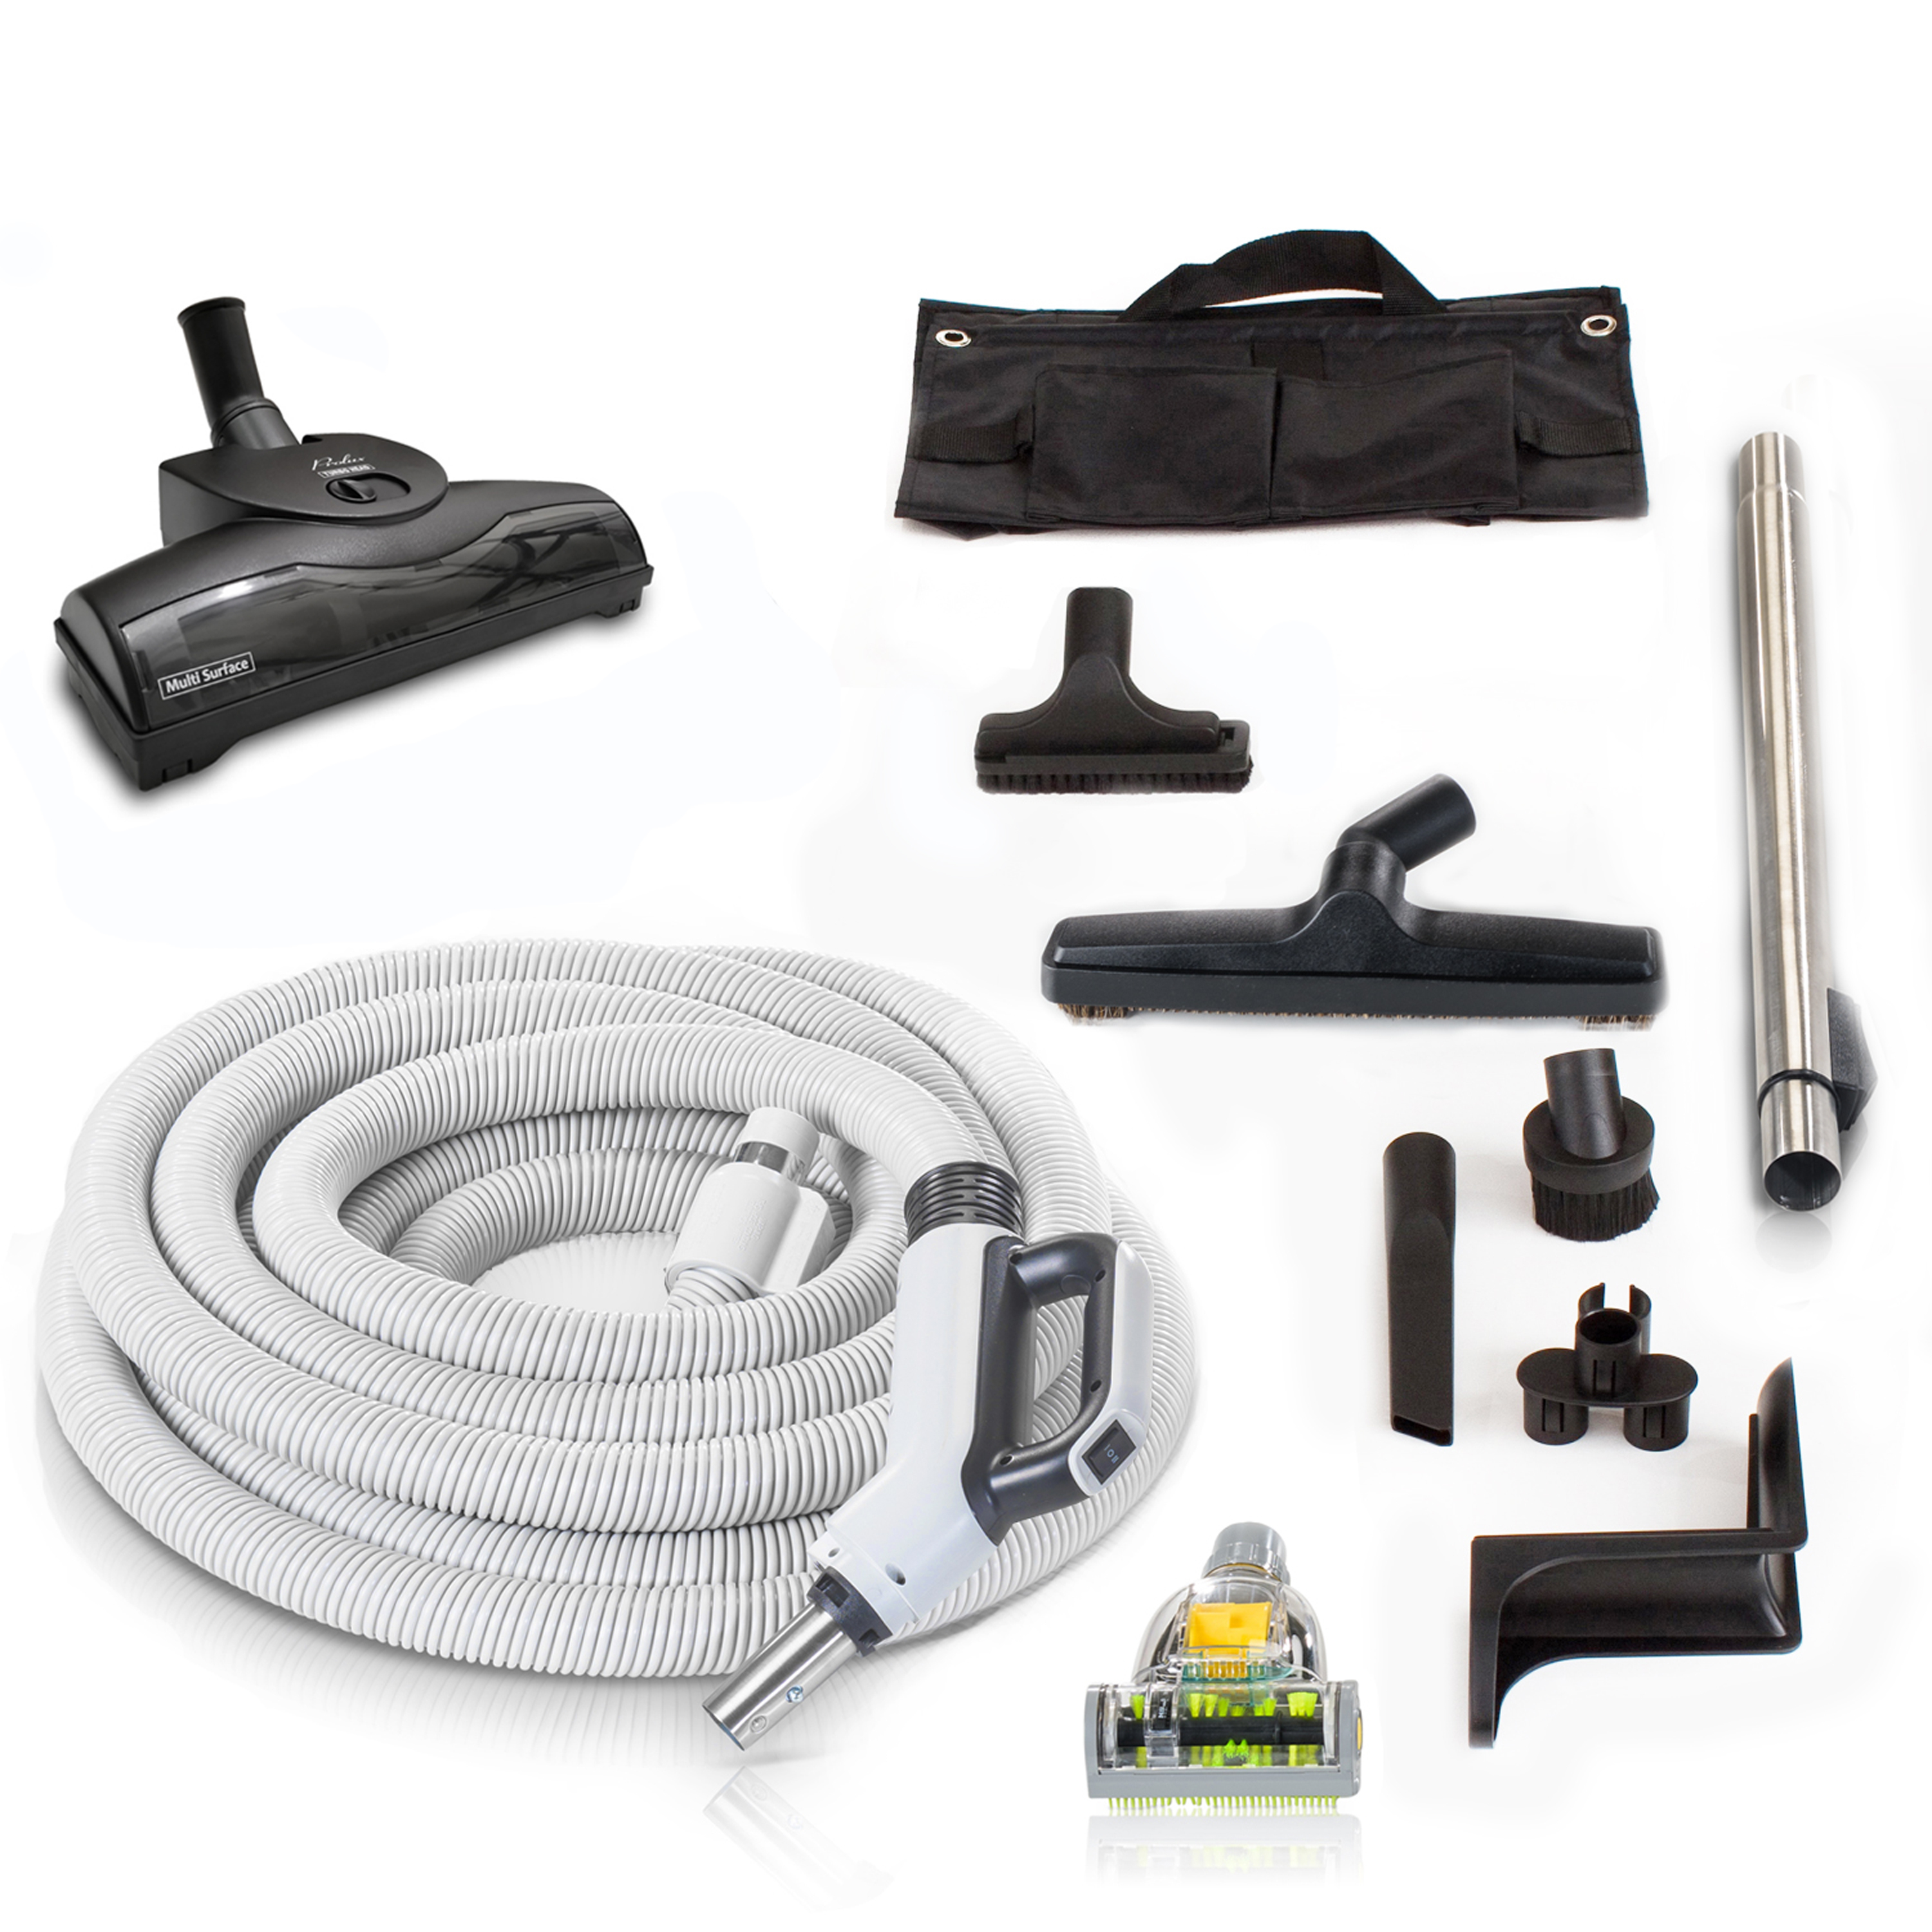 35' Central Vacuum Hose Kit with Turbo Nozzles & 1 YR warranty by Prolux